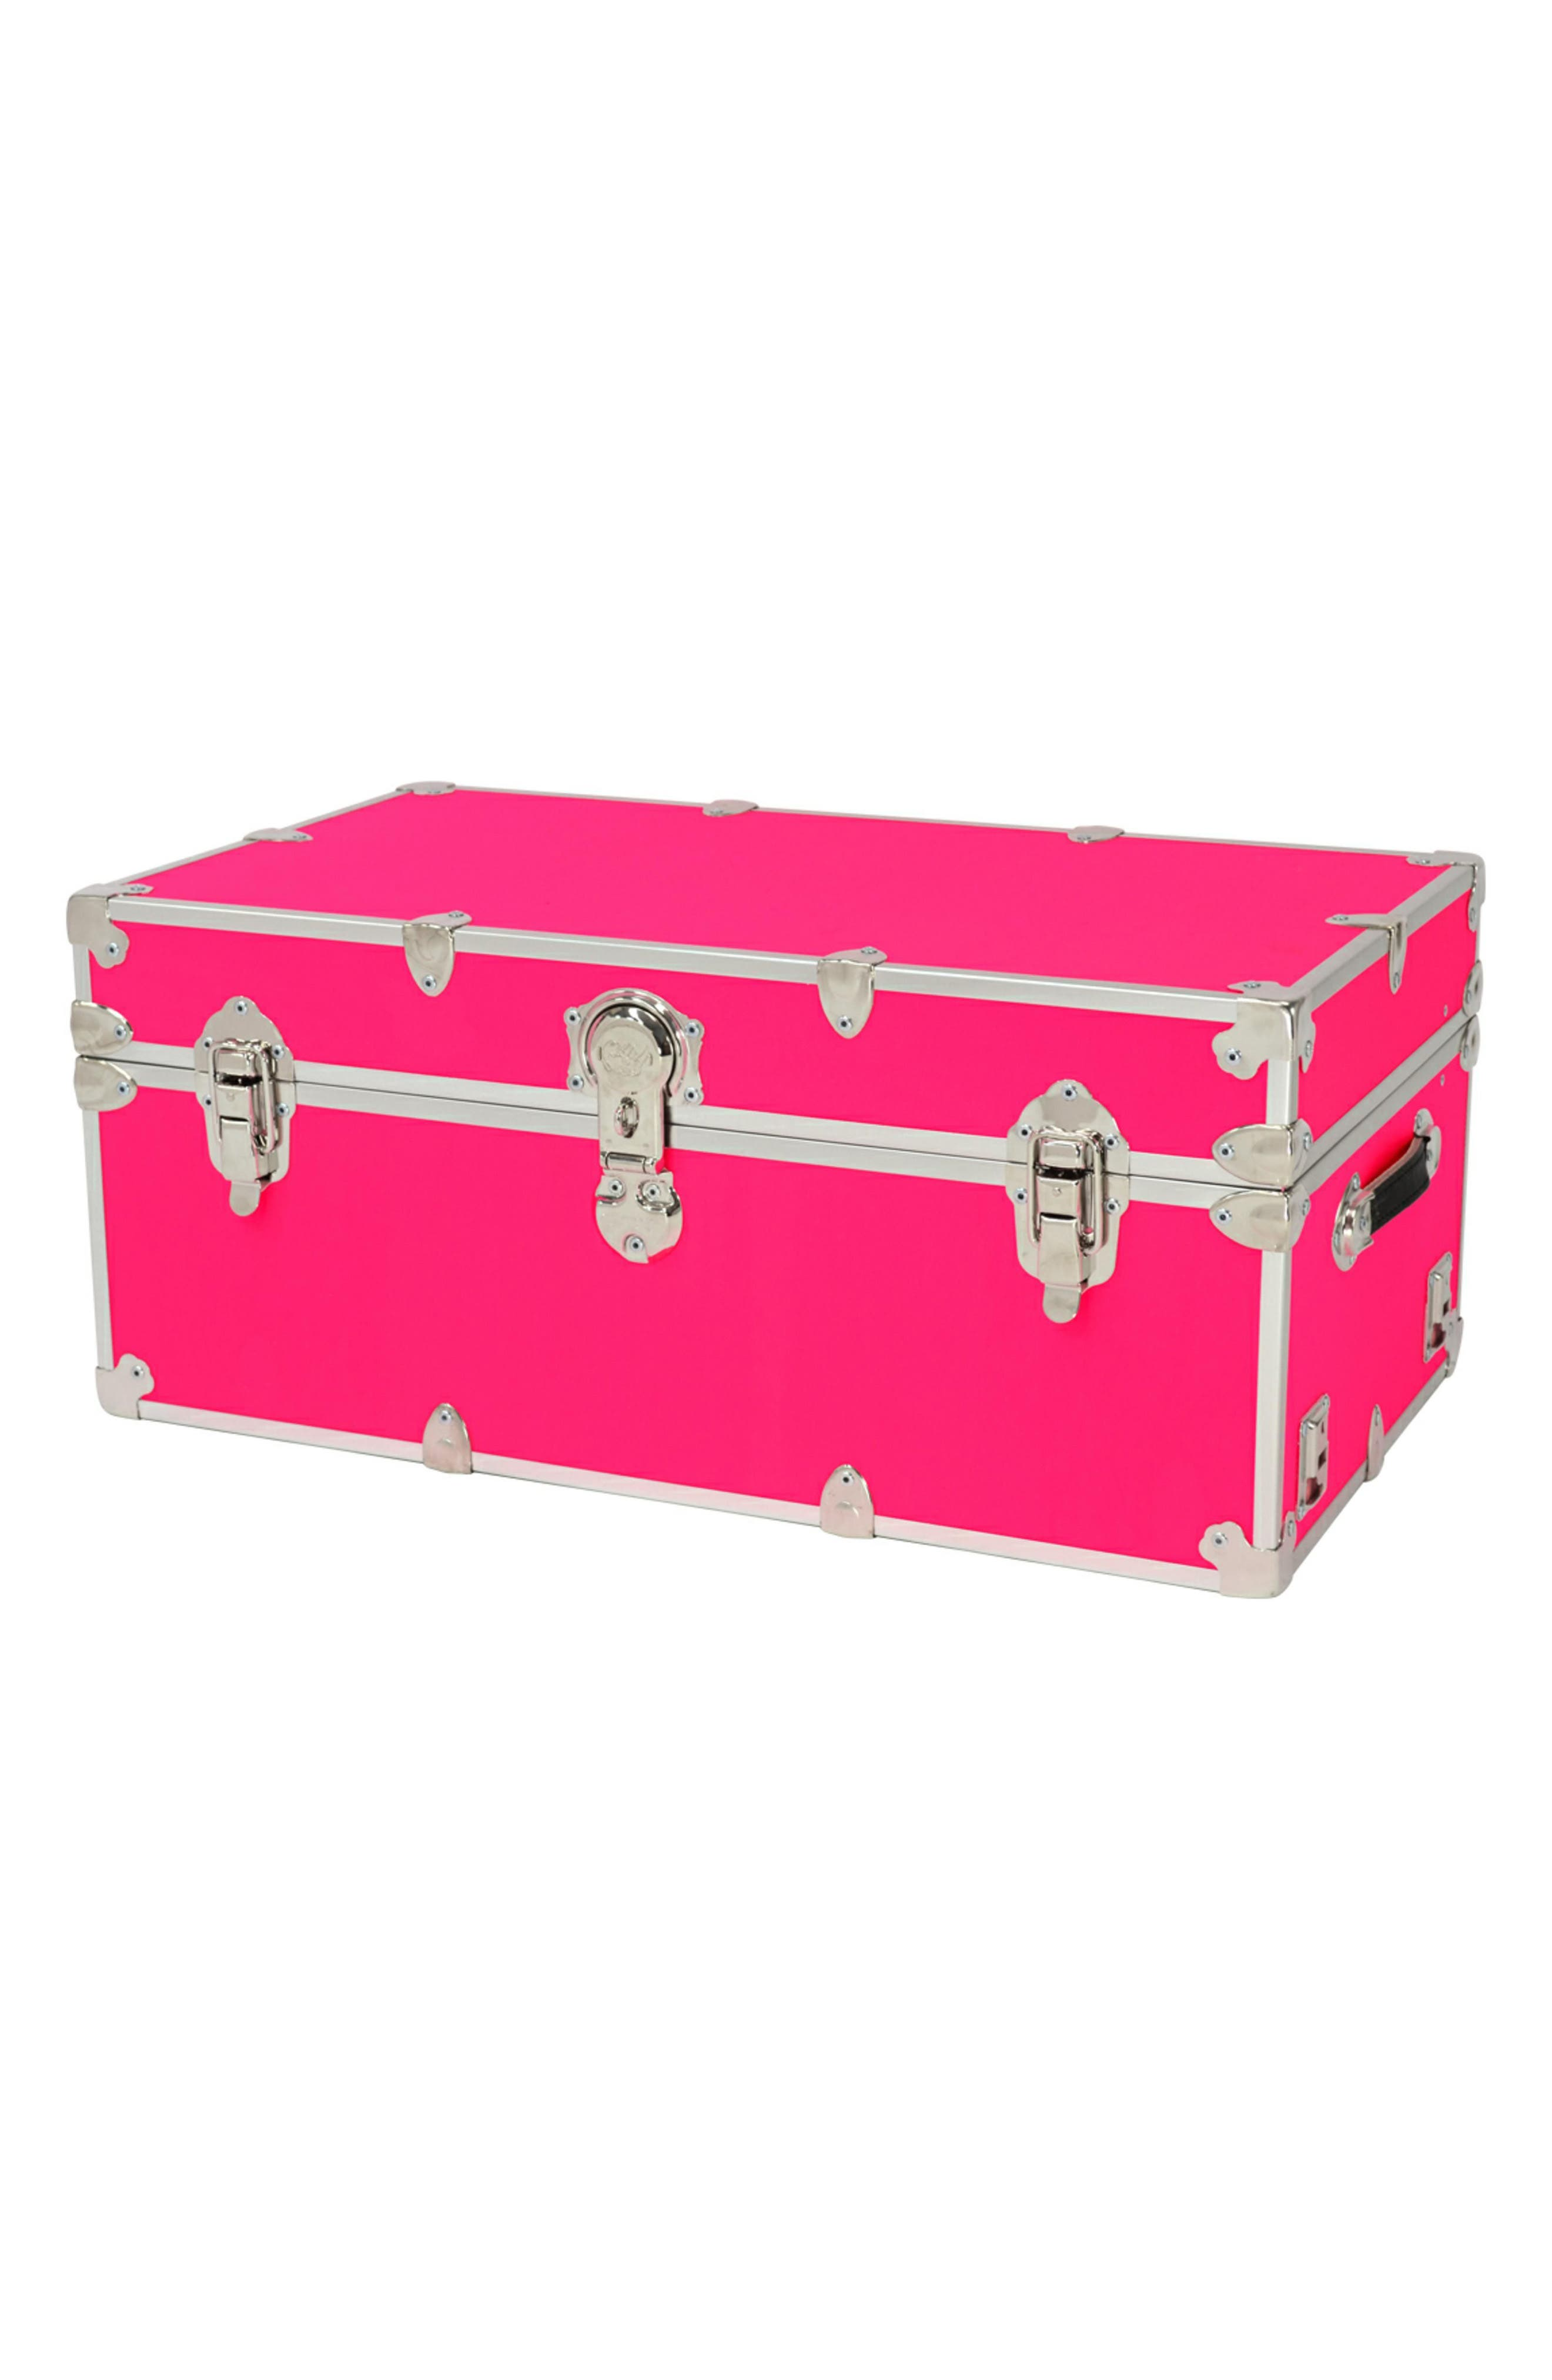 Rhino Trunk  Case Large Armor Trunk Size One Size  Pink